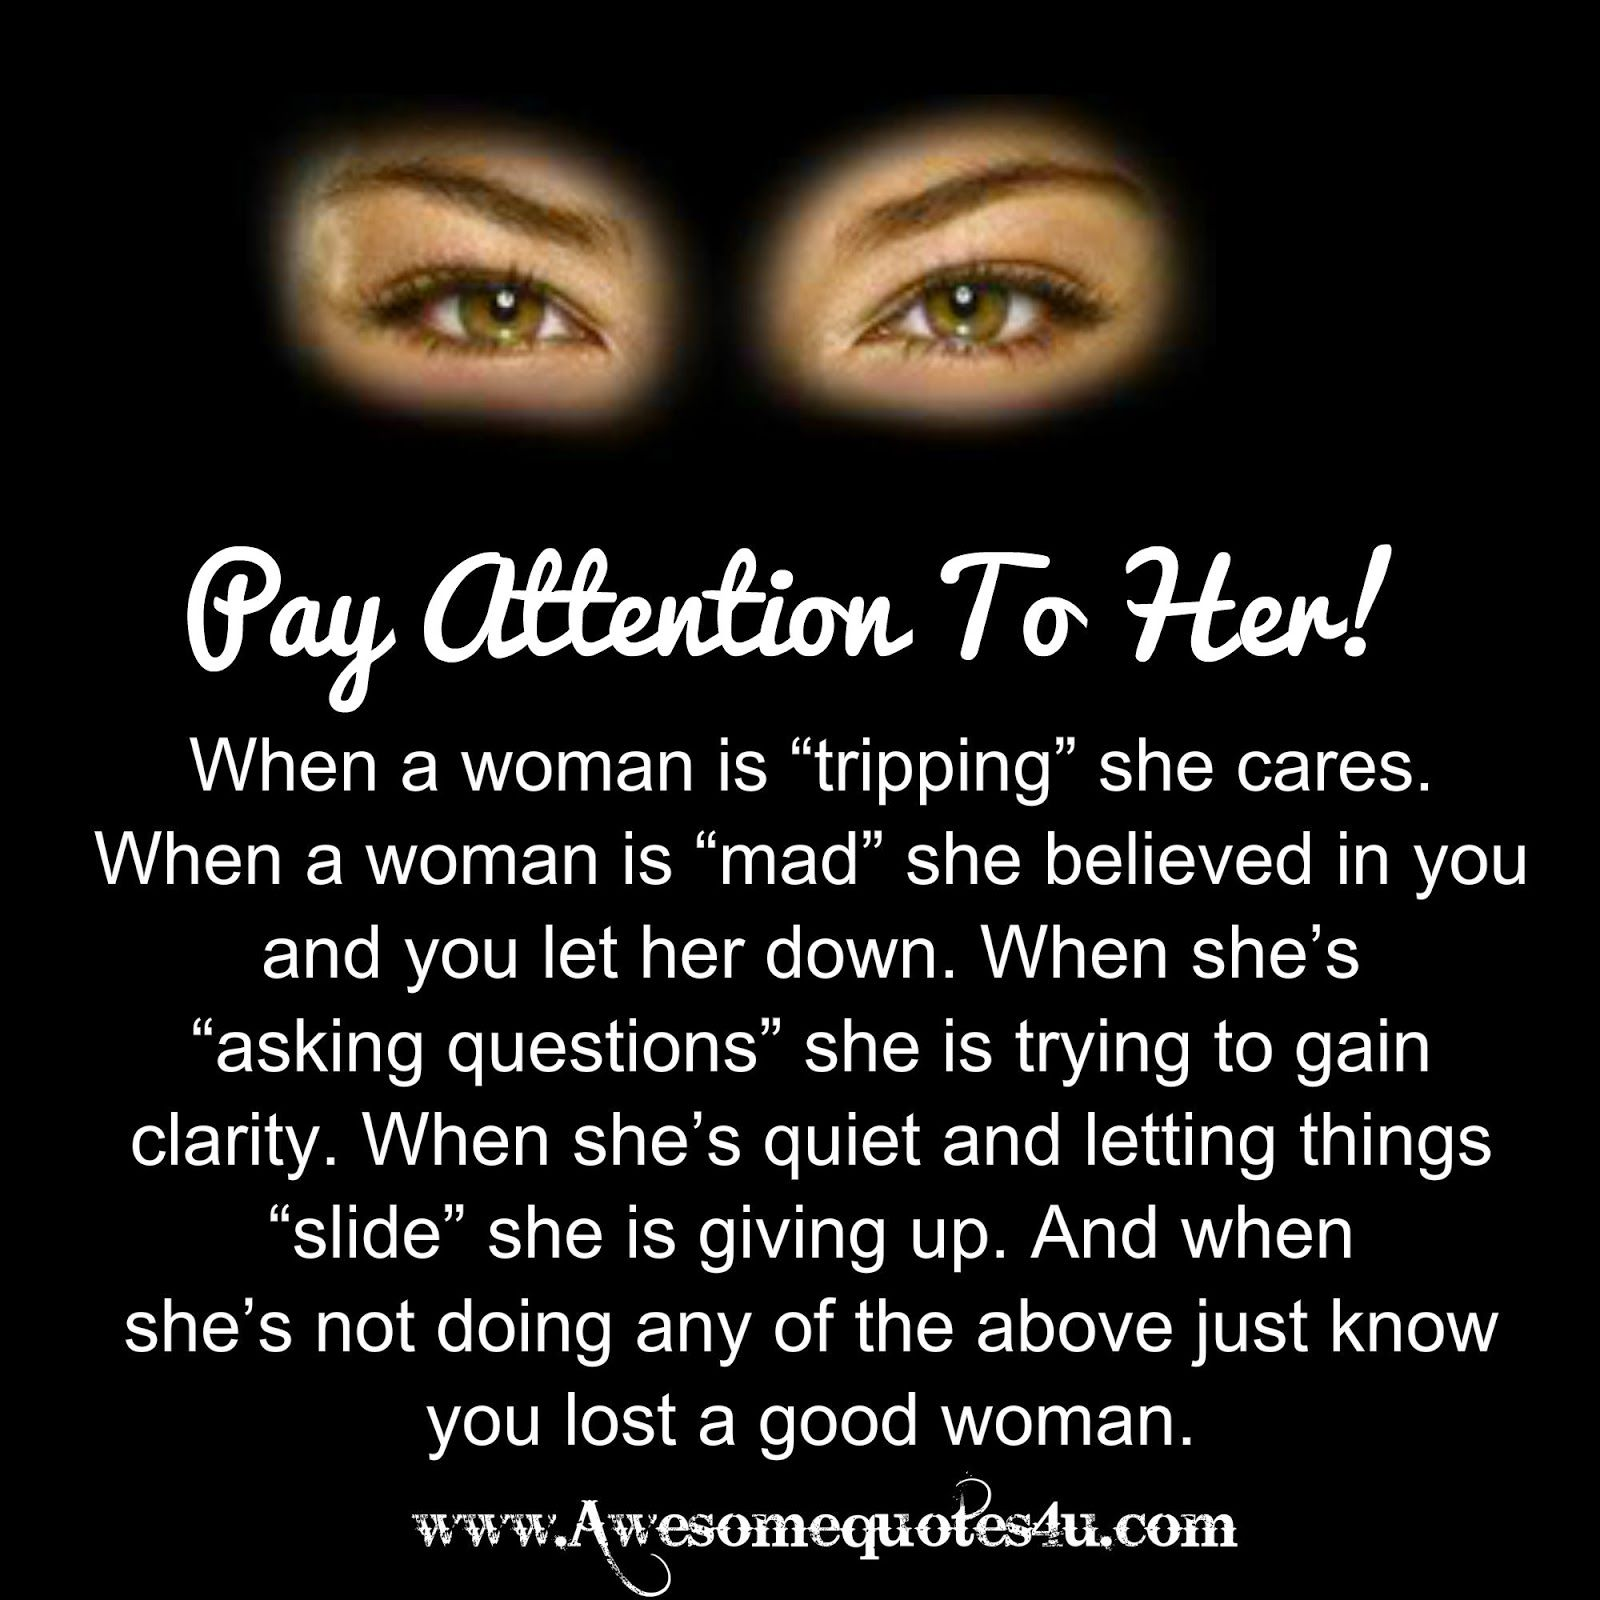 Awesome Quotes: Qualities of Good Woman | My Favorite Quotes